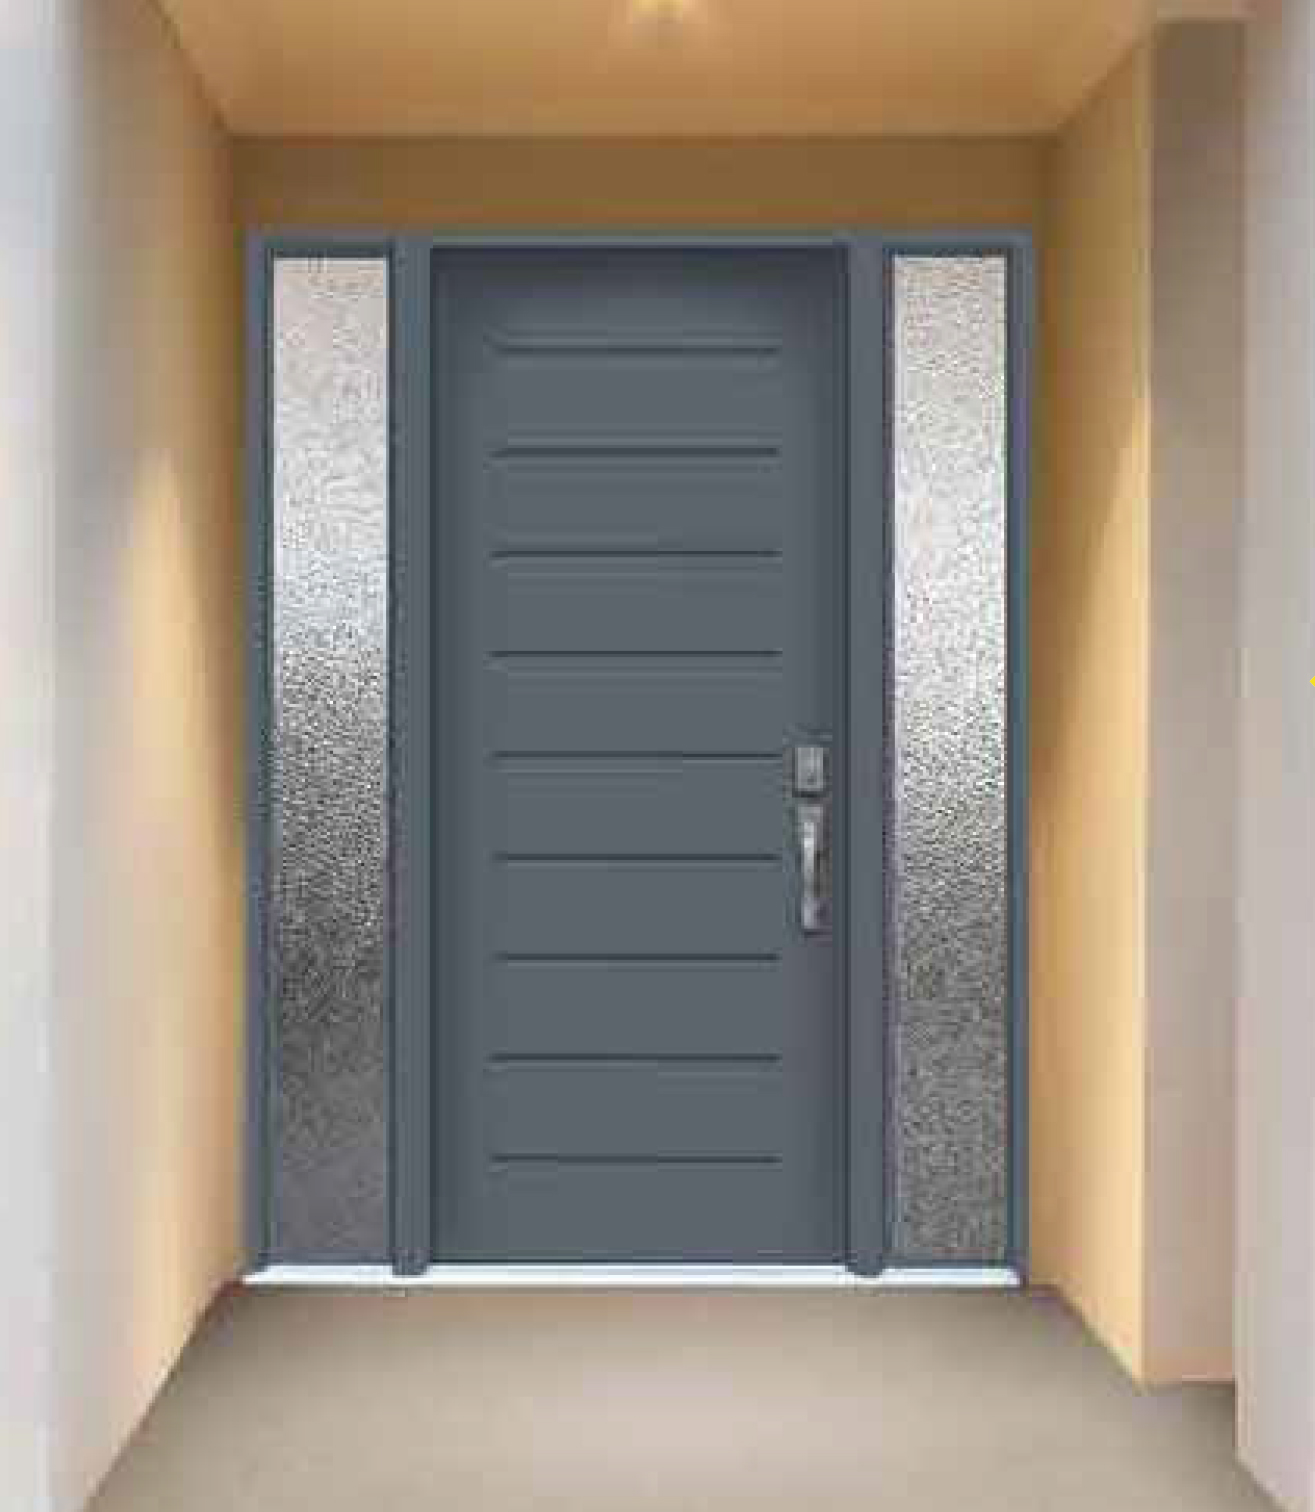 Design collection archives modern doors Modern glass exterior doors